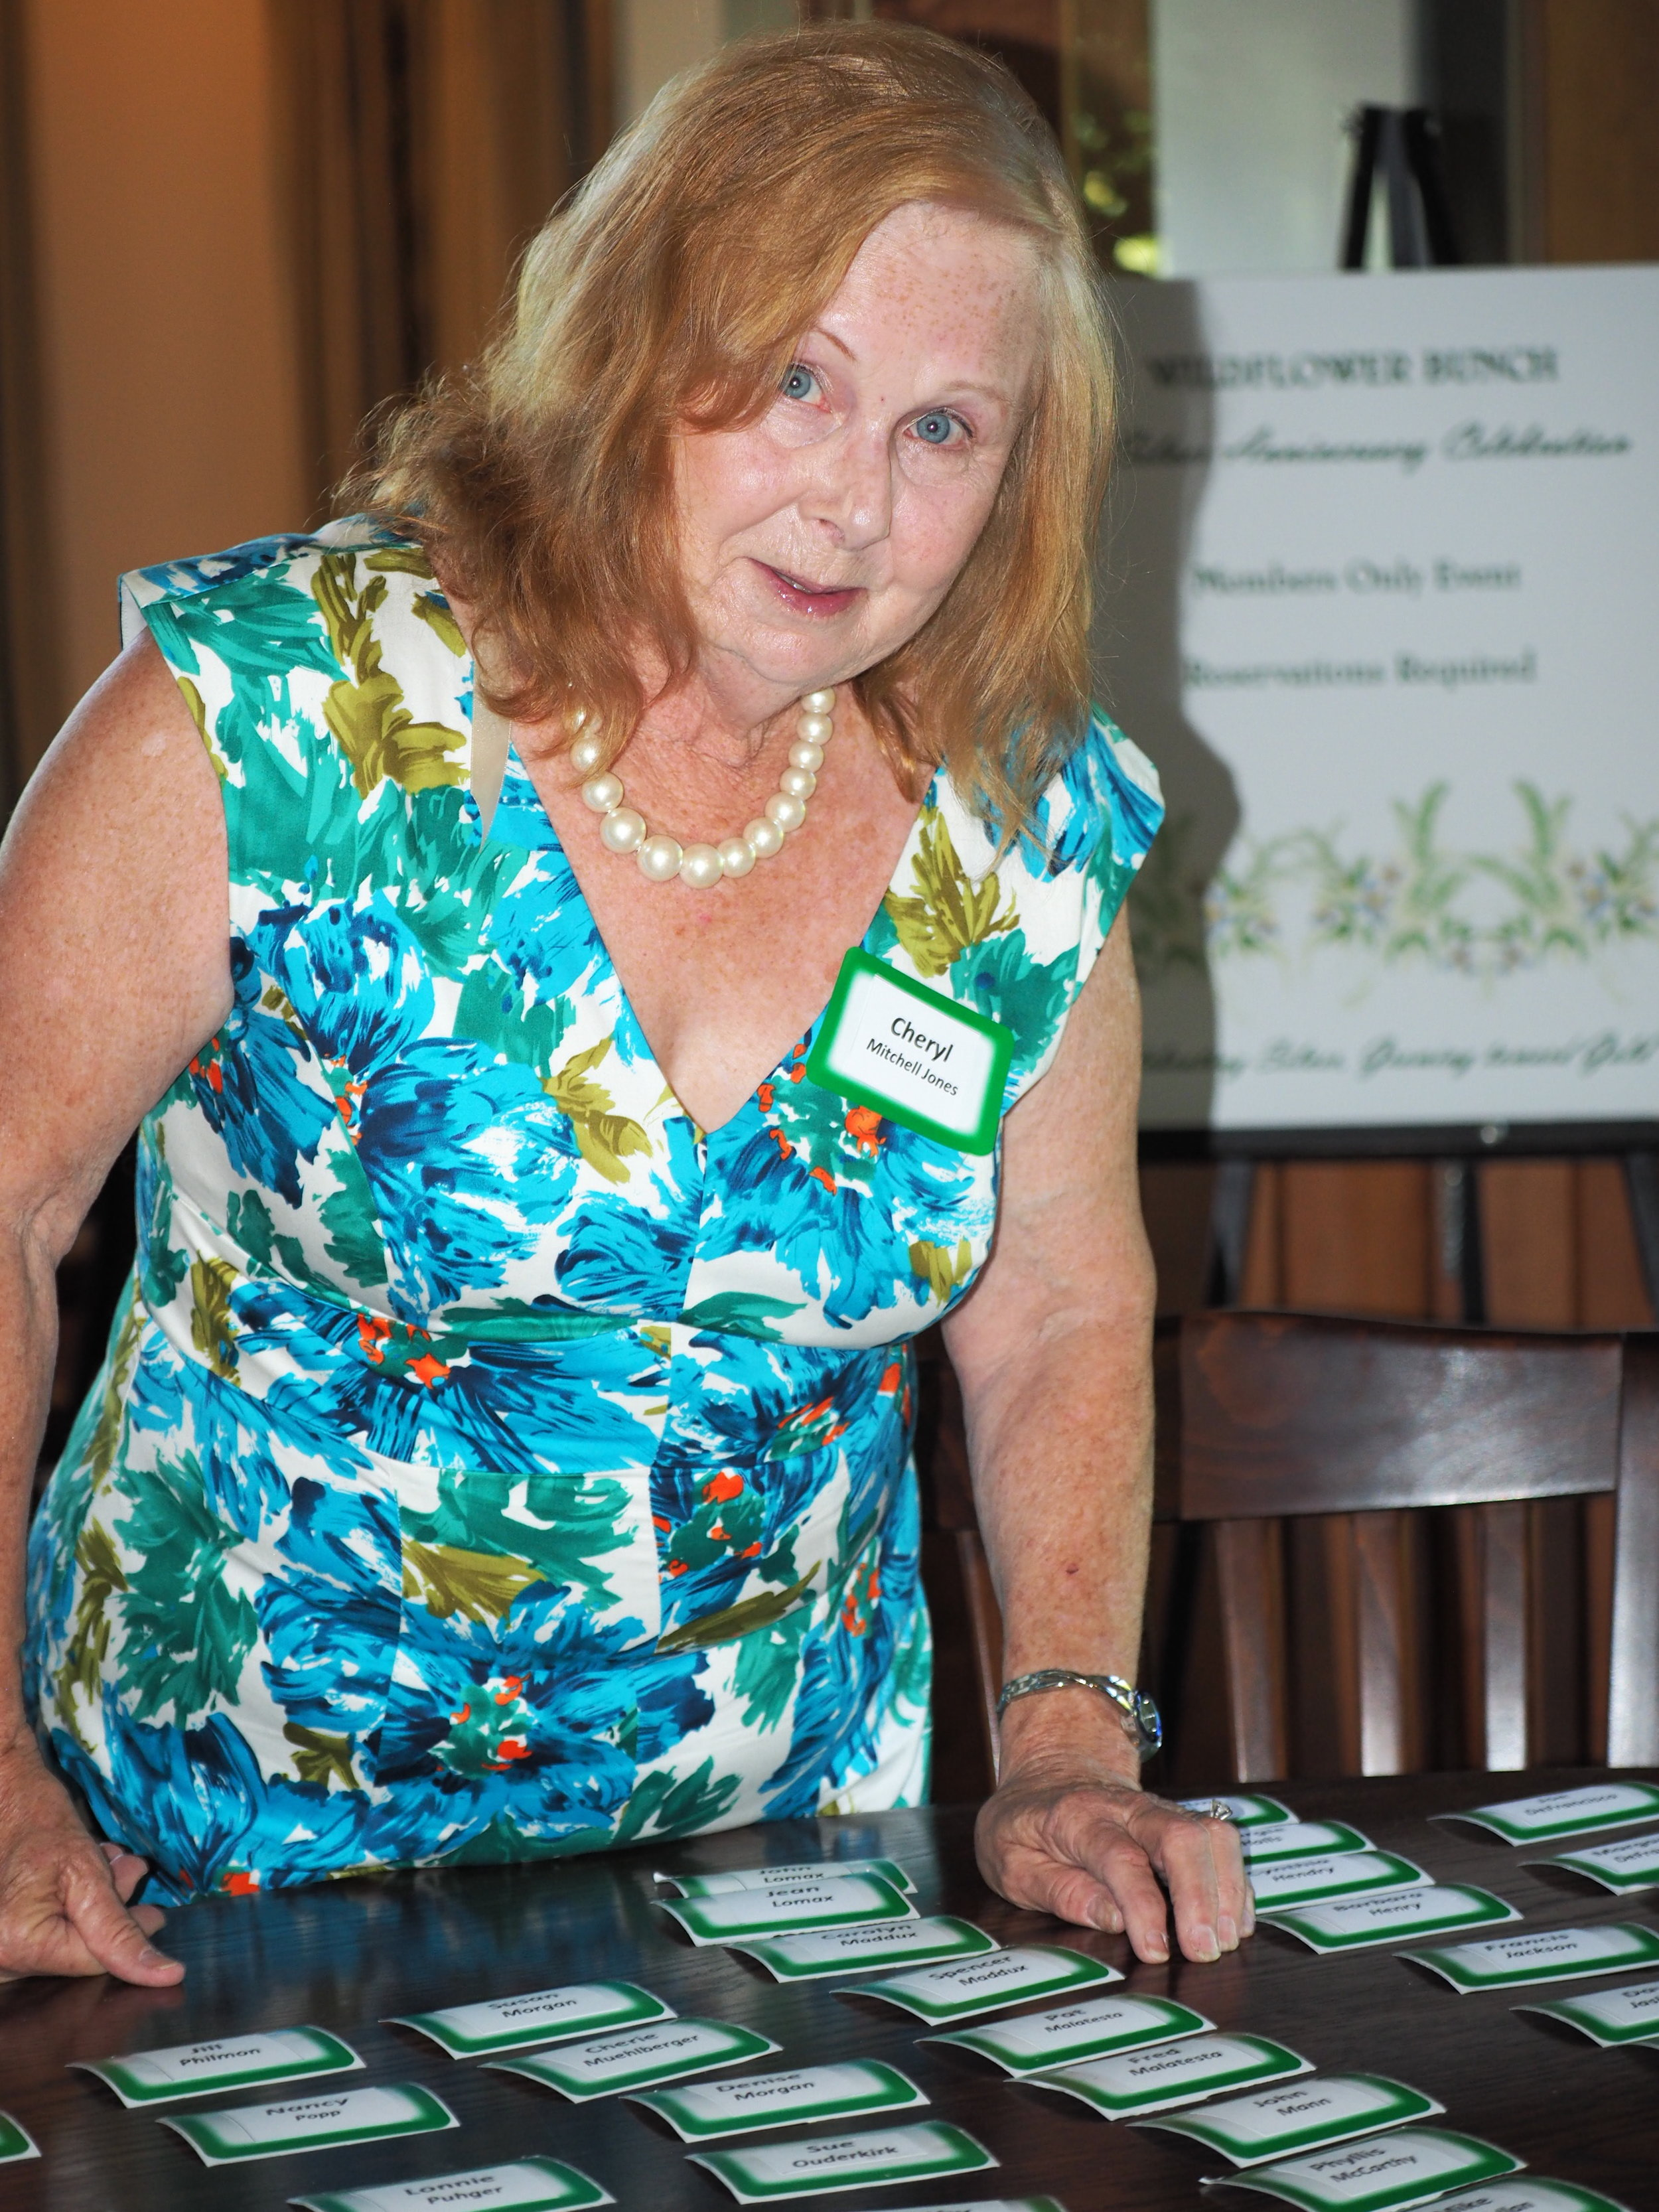 Cheryl Mitchell-Jones welcomed members and guests as they arrived.